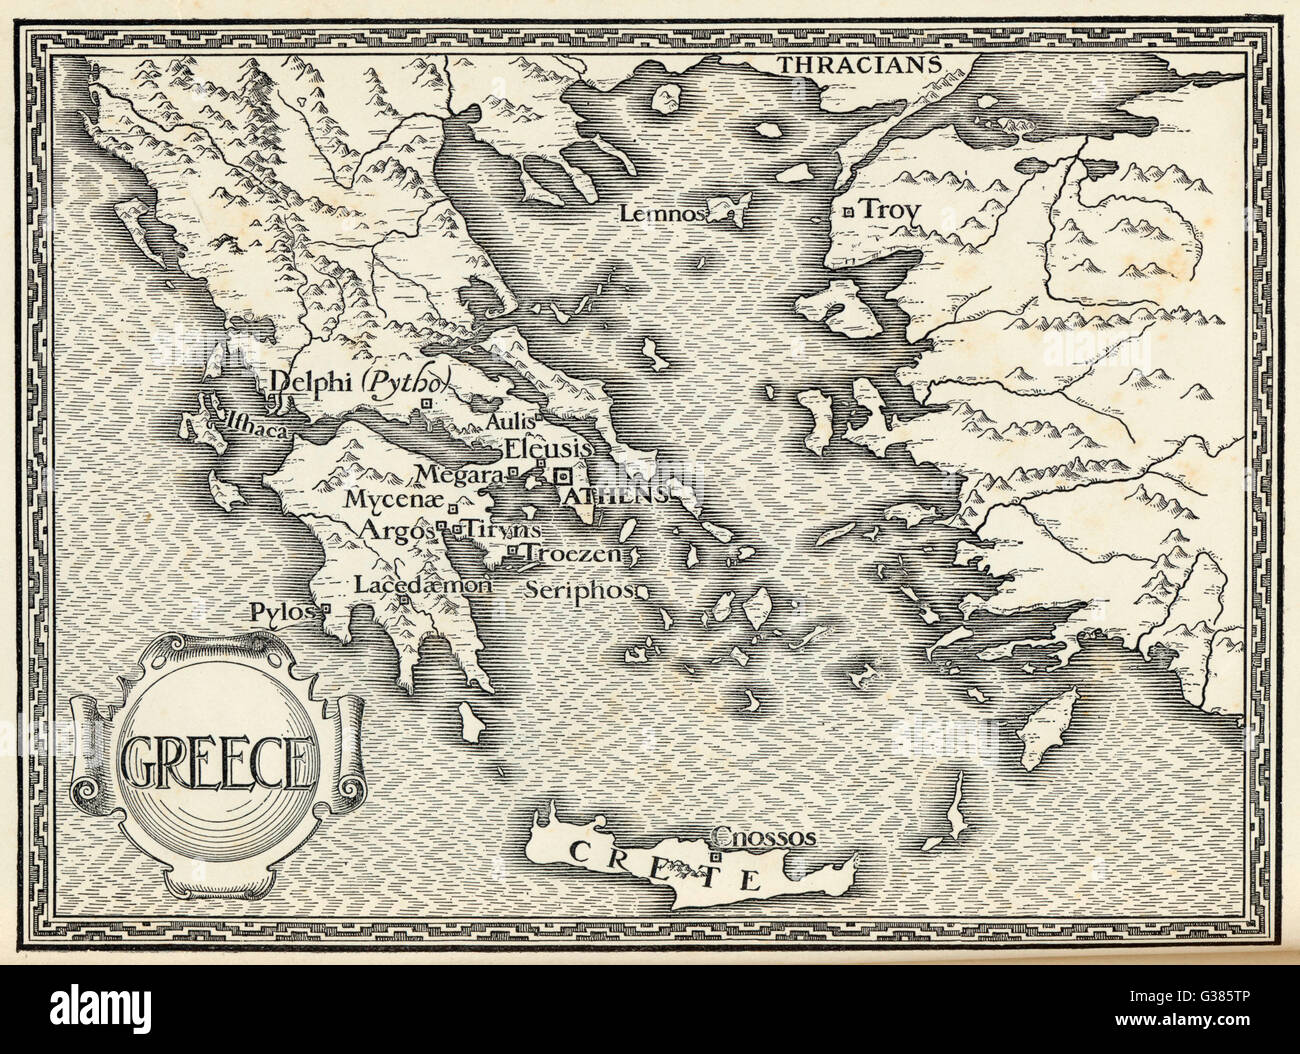 Map of ancient Greece. - Stock Image